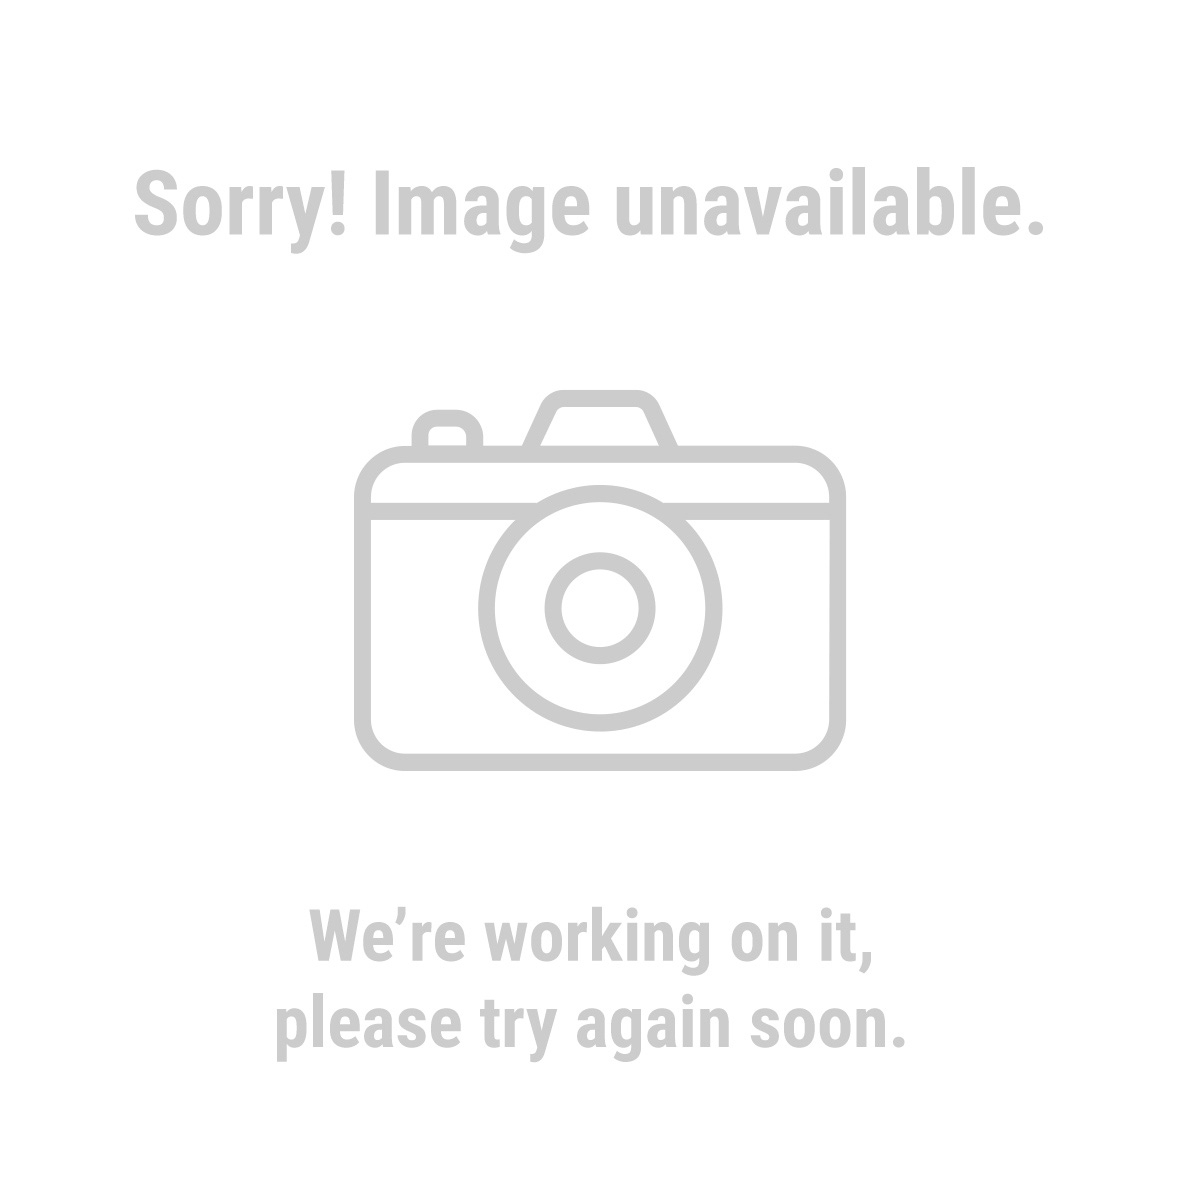 Western Safety Gloves 97442 Mechanic's Gloves with Spandex, Large